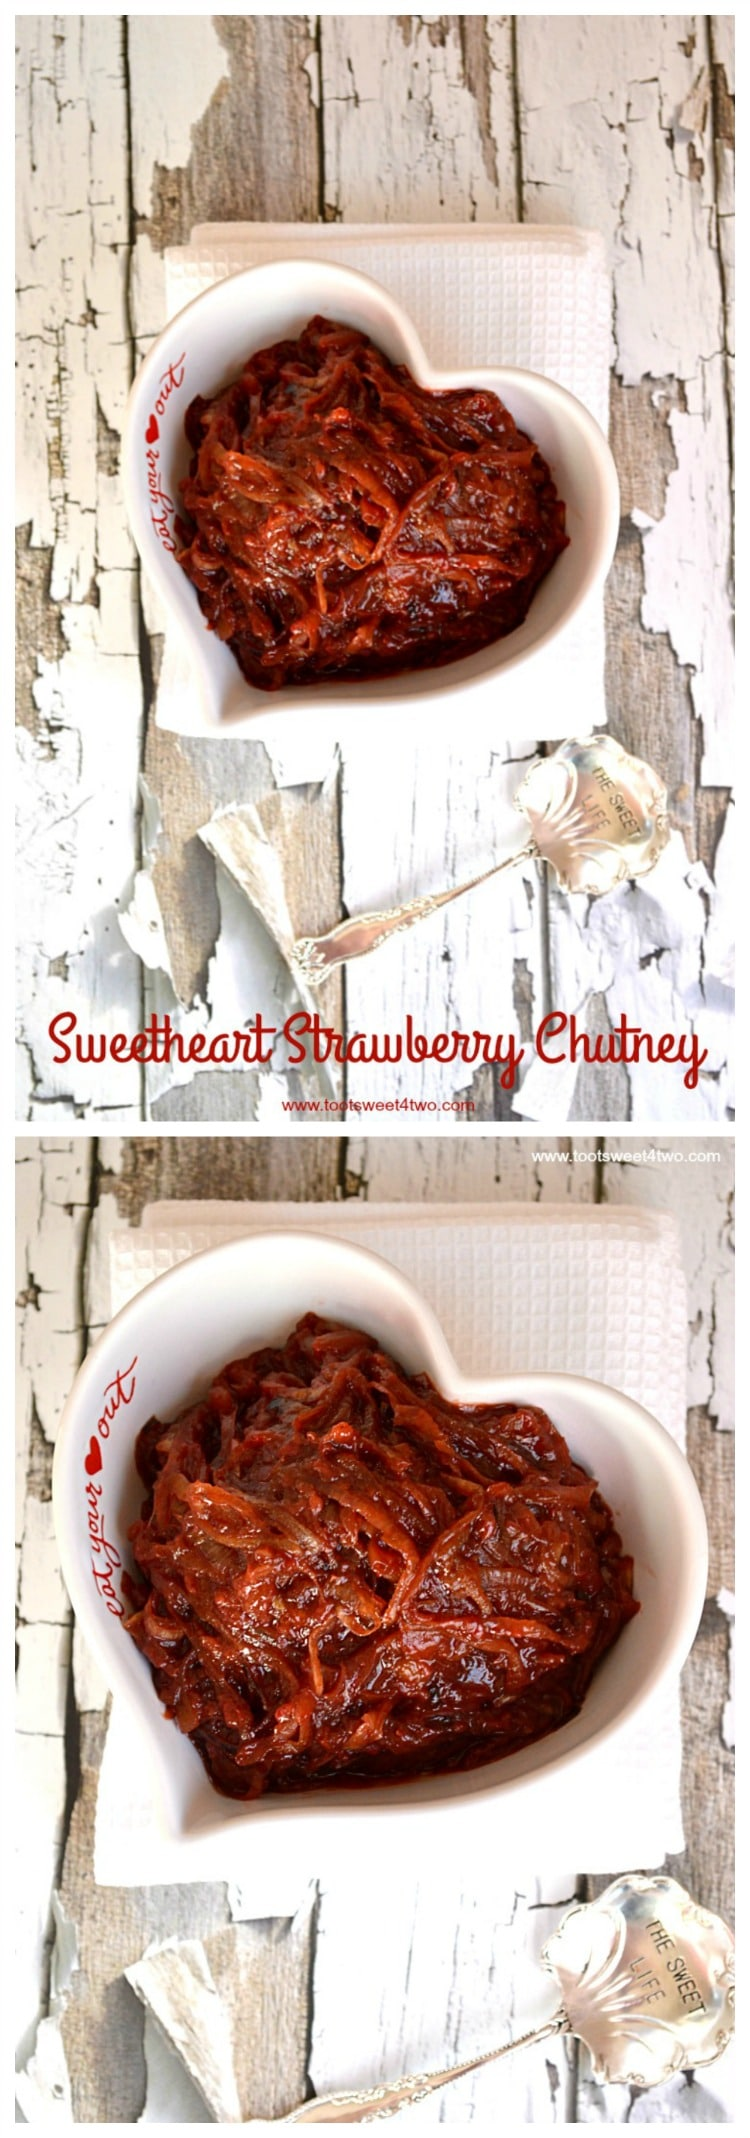 Sweetheart Strawberry Chutney collage